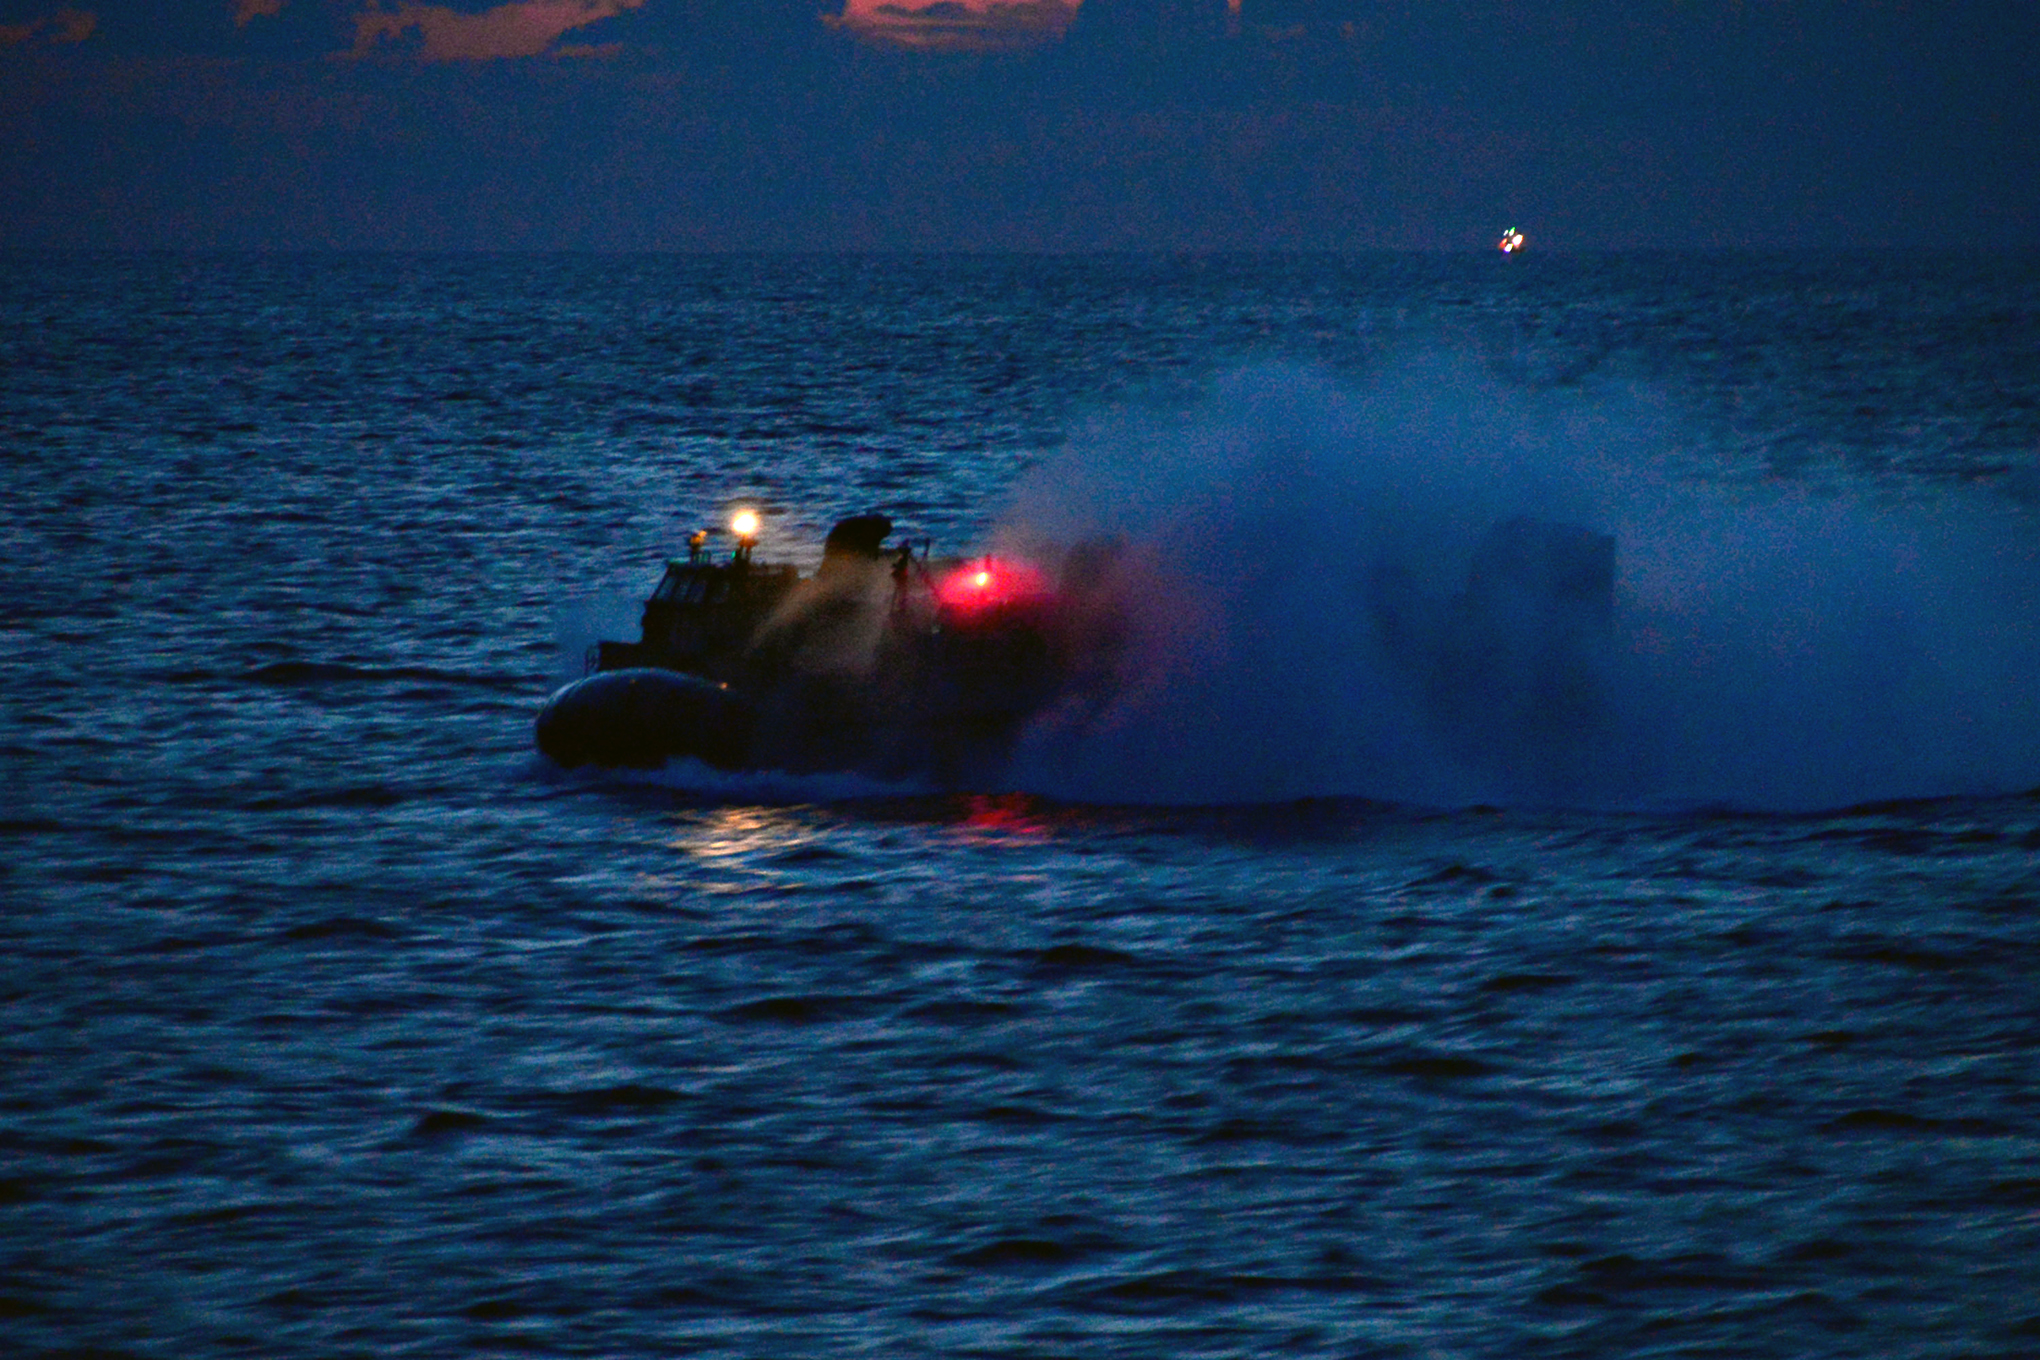 U.S Navy • LCAC Night Operations • Oct 09 2020